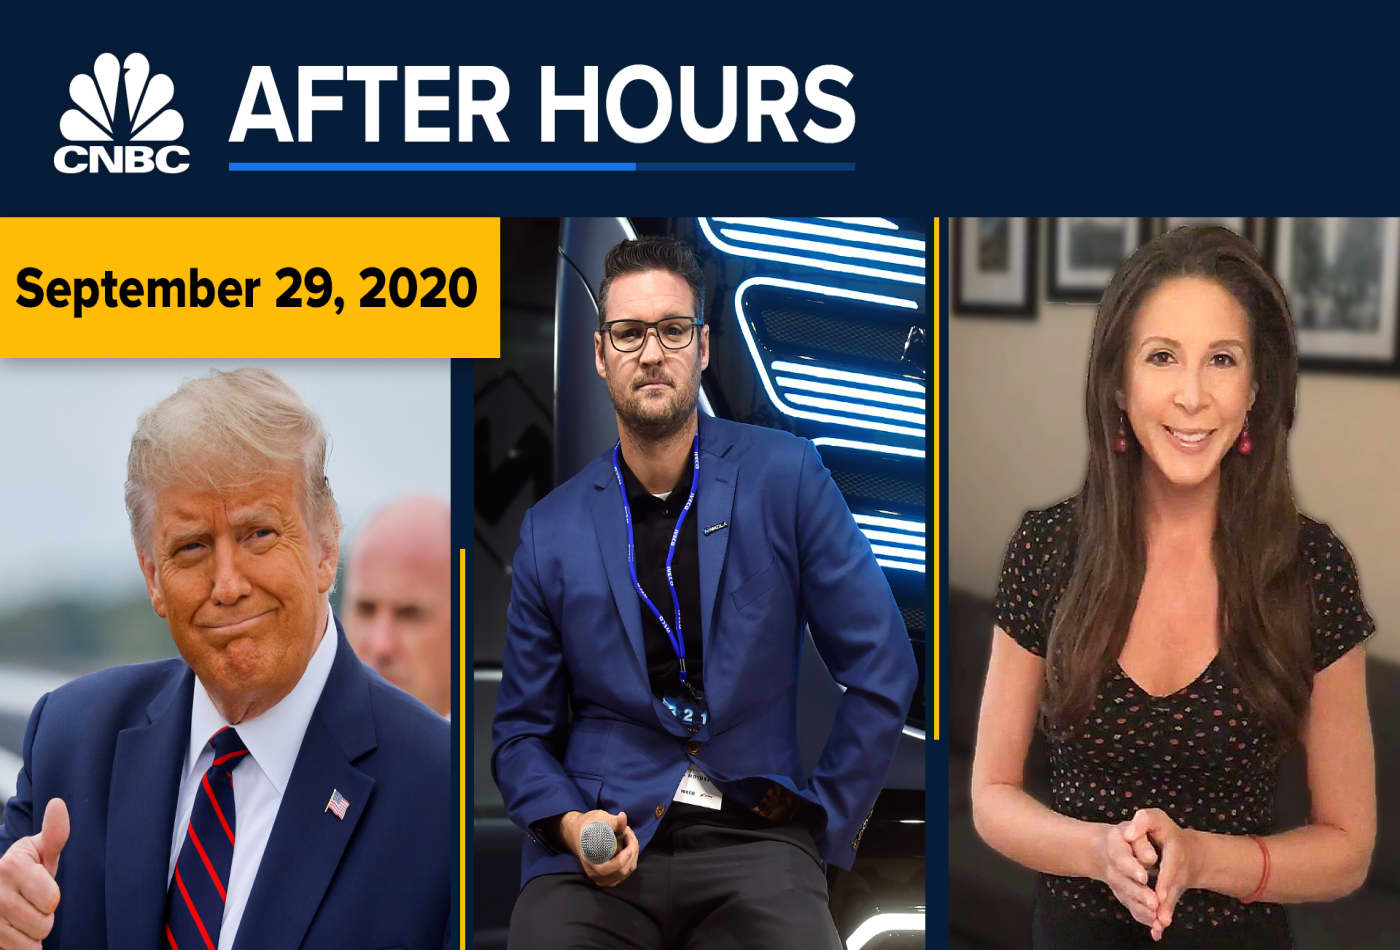 Trump's tax bill takes centerstage ahead of big debate with Biden: CNBC After Hours